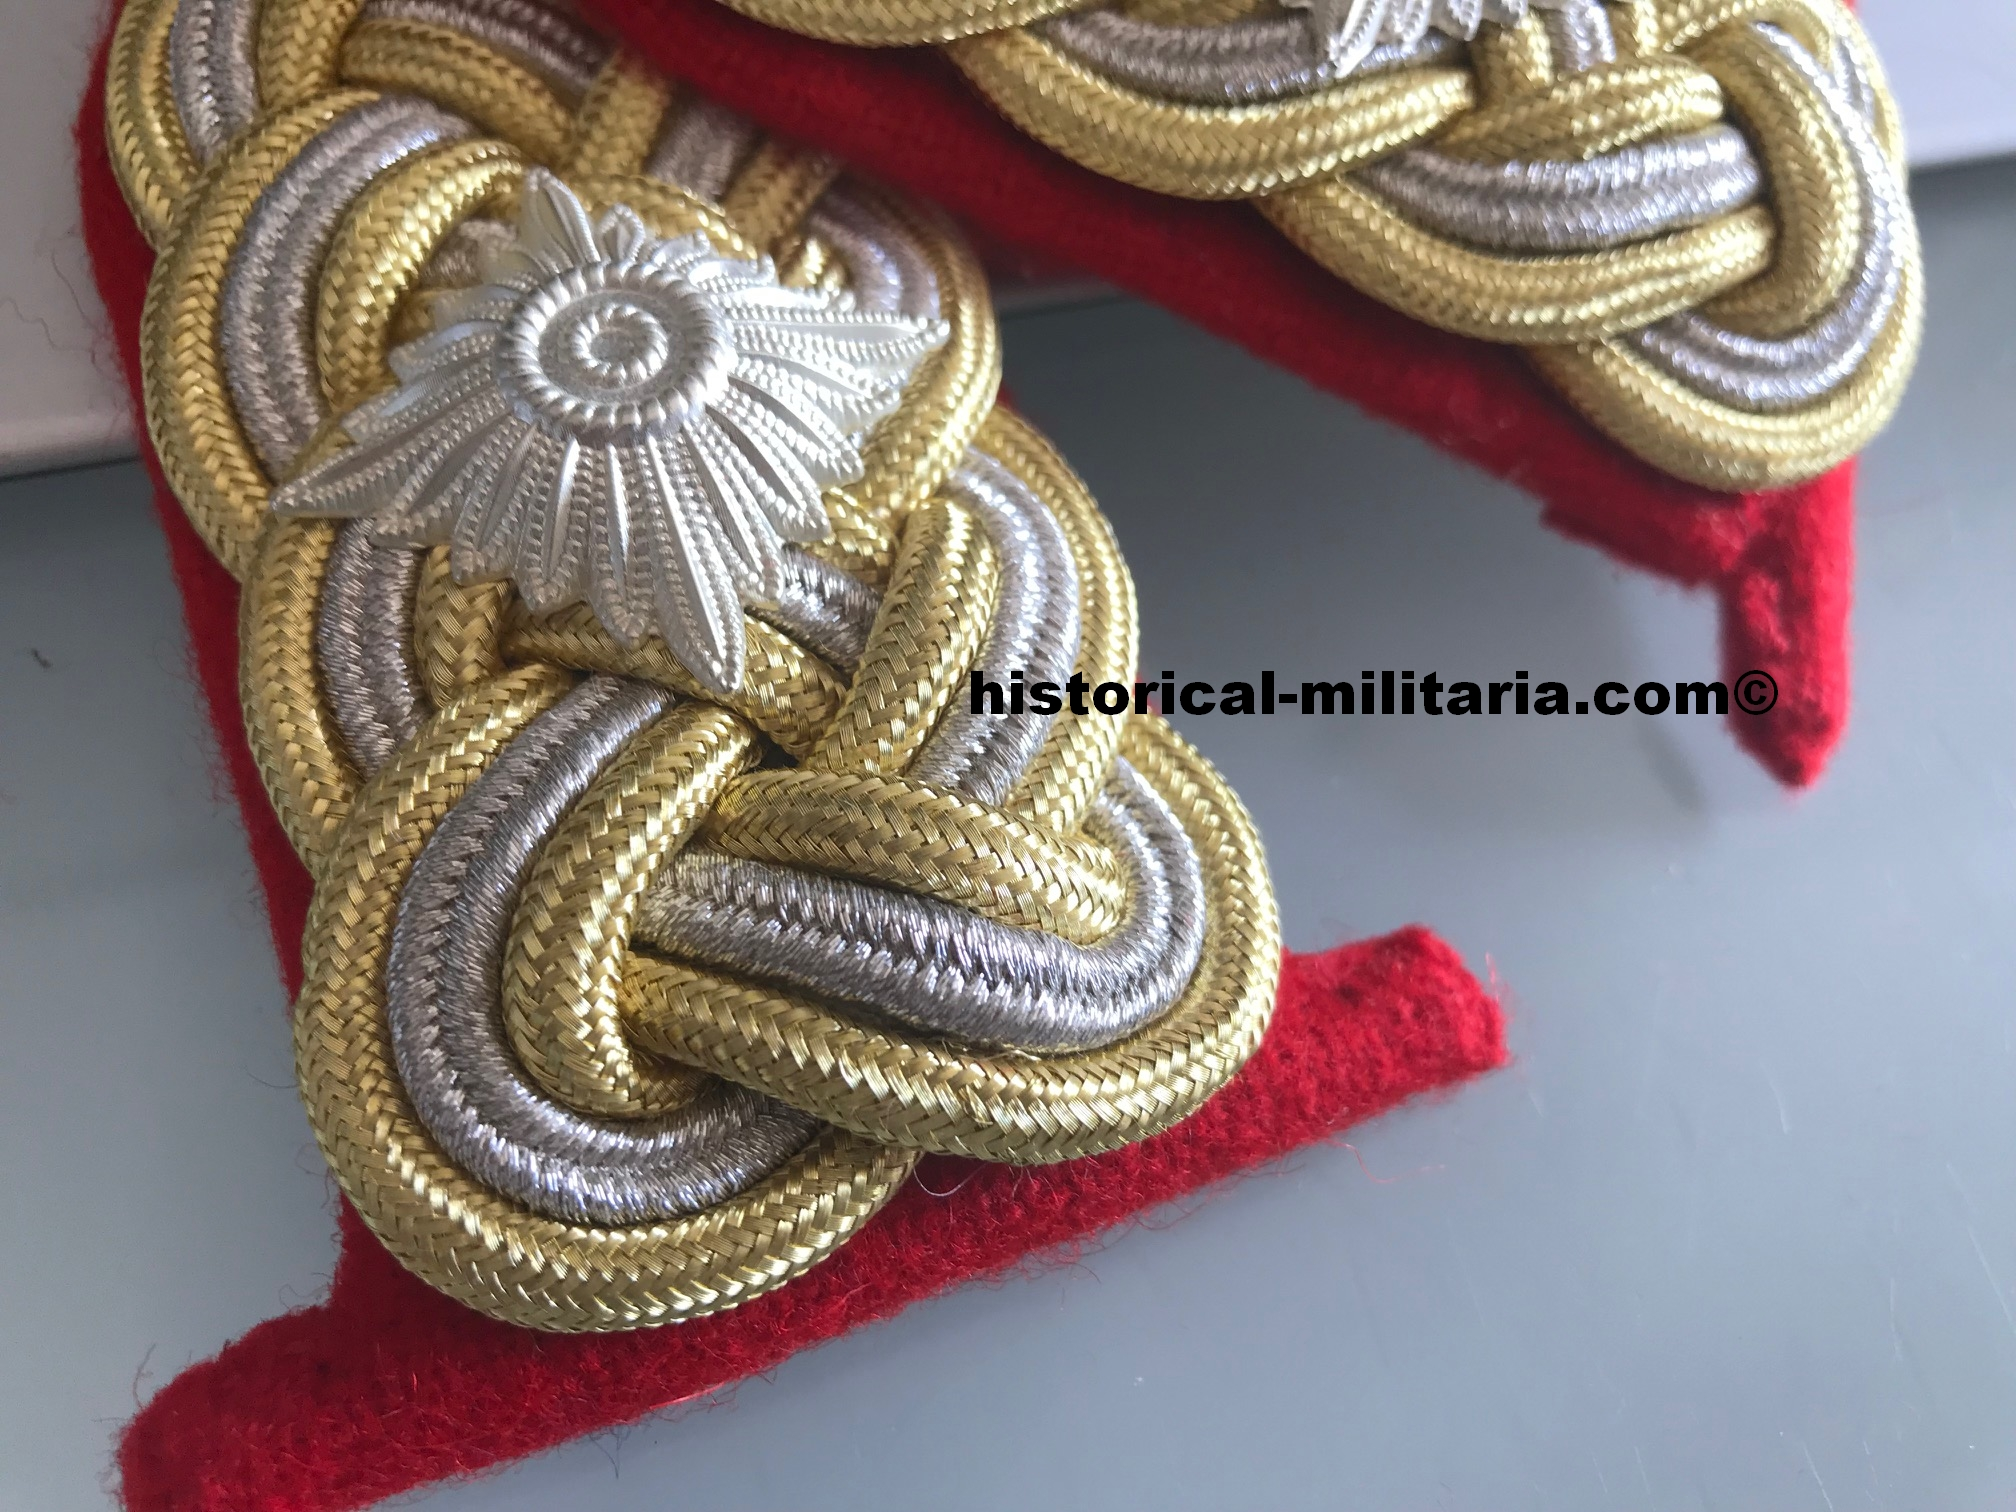 Generalleutnant Wehrmacht Schulterklappen Sommeruniform - German Army Major General removable shoulder boards summer tunic - spalline da Generale di Divisione Heer per l'uniforme estiva